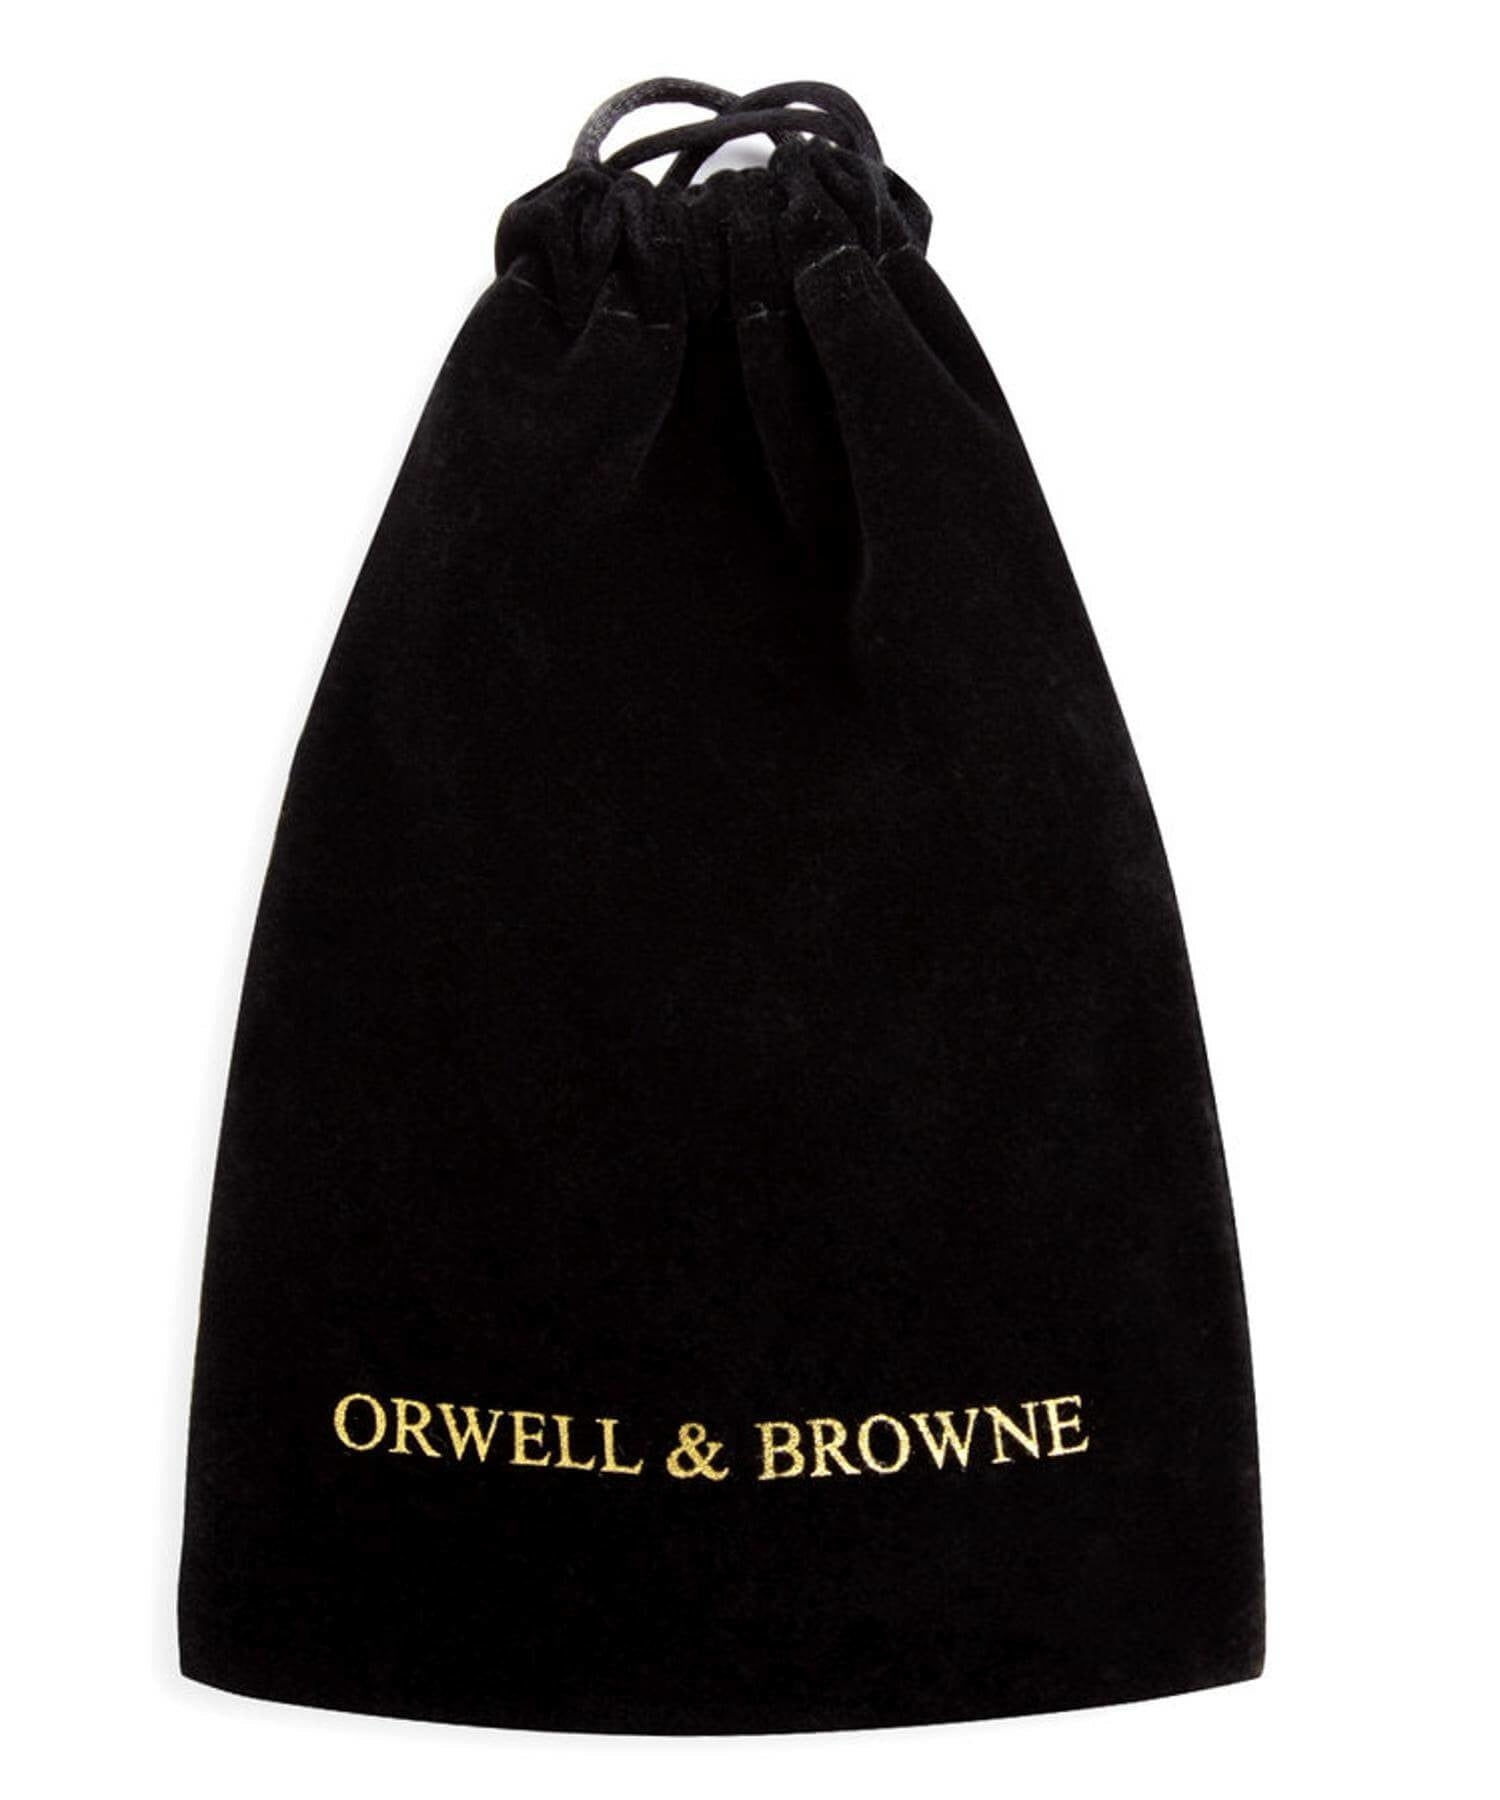 Donegal Tweed Pocket Square - Checkered Marine - [Orwell & Browne] - Mens Accessories - Irish Gifts